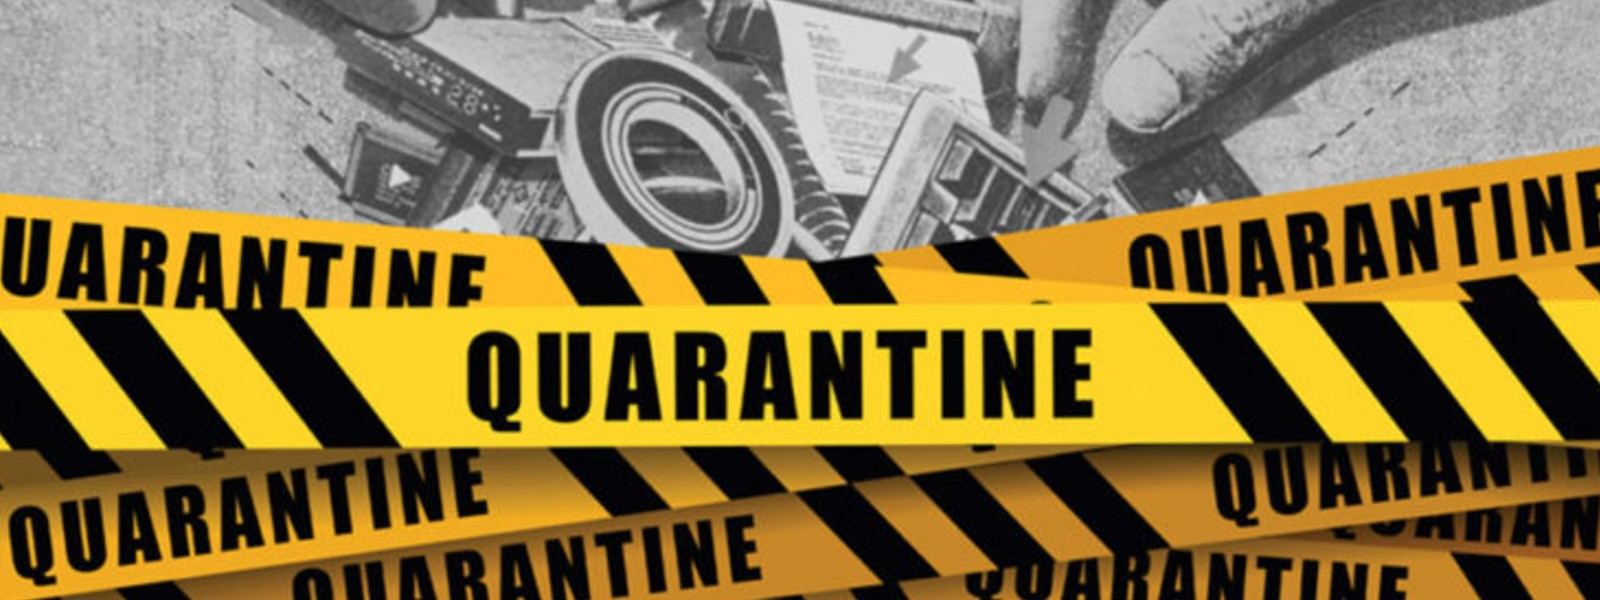 149 people released from quarantine facilities; 4348 released thus far